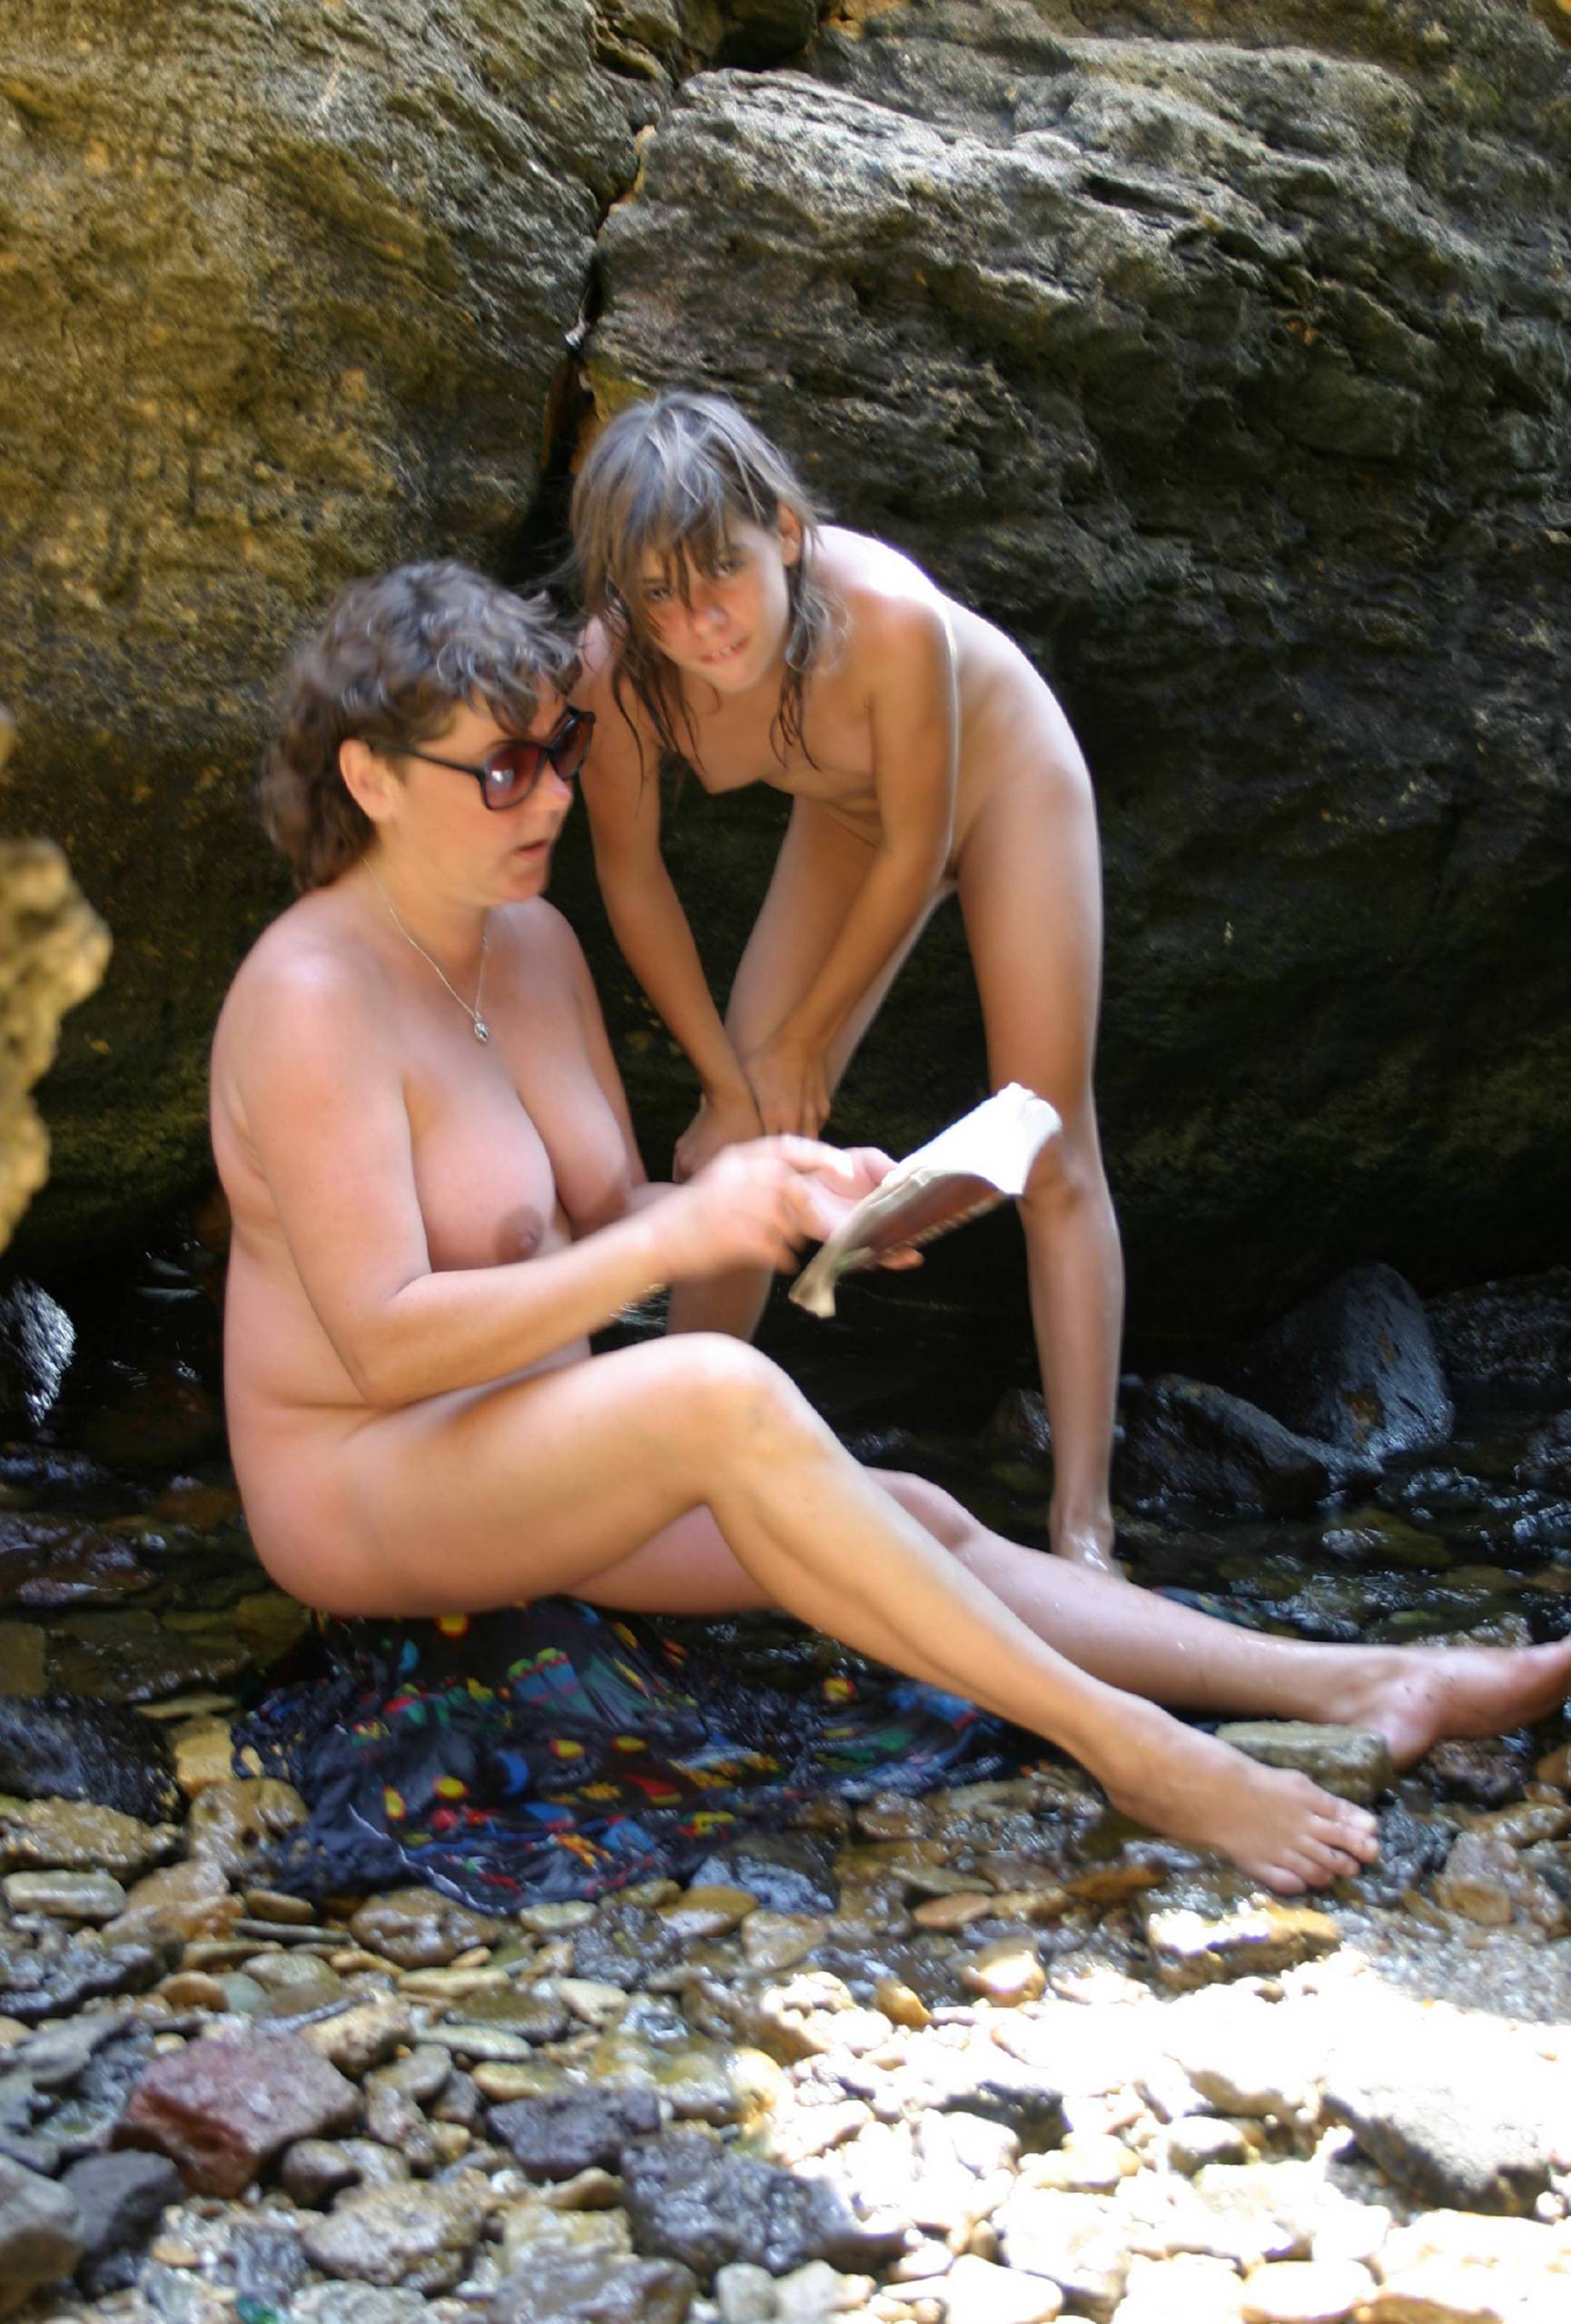 Nudist Gallery Nudist Shore and Mountains - 2